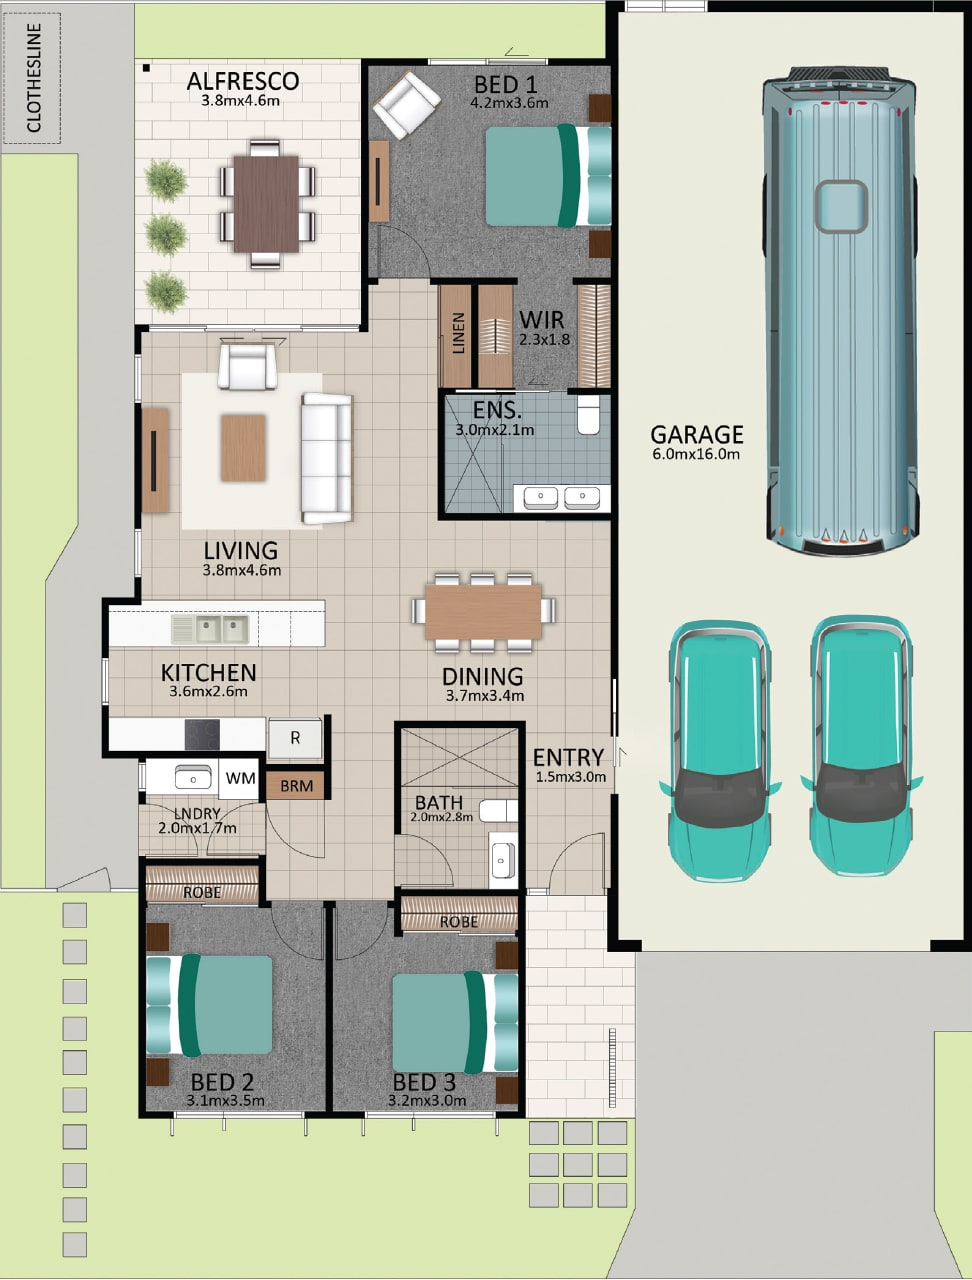 LAT25 Floorplan GAL LOT 231 FEB2021 V1 - Lot 231